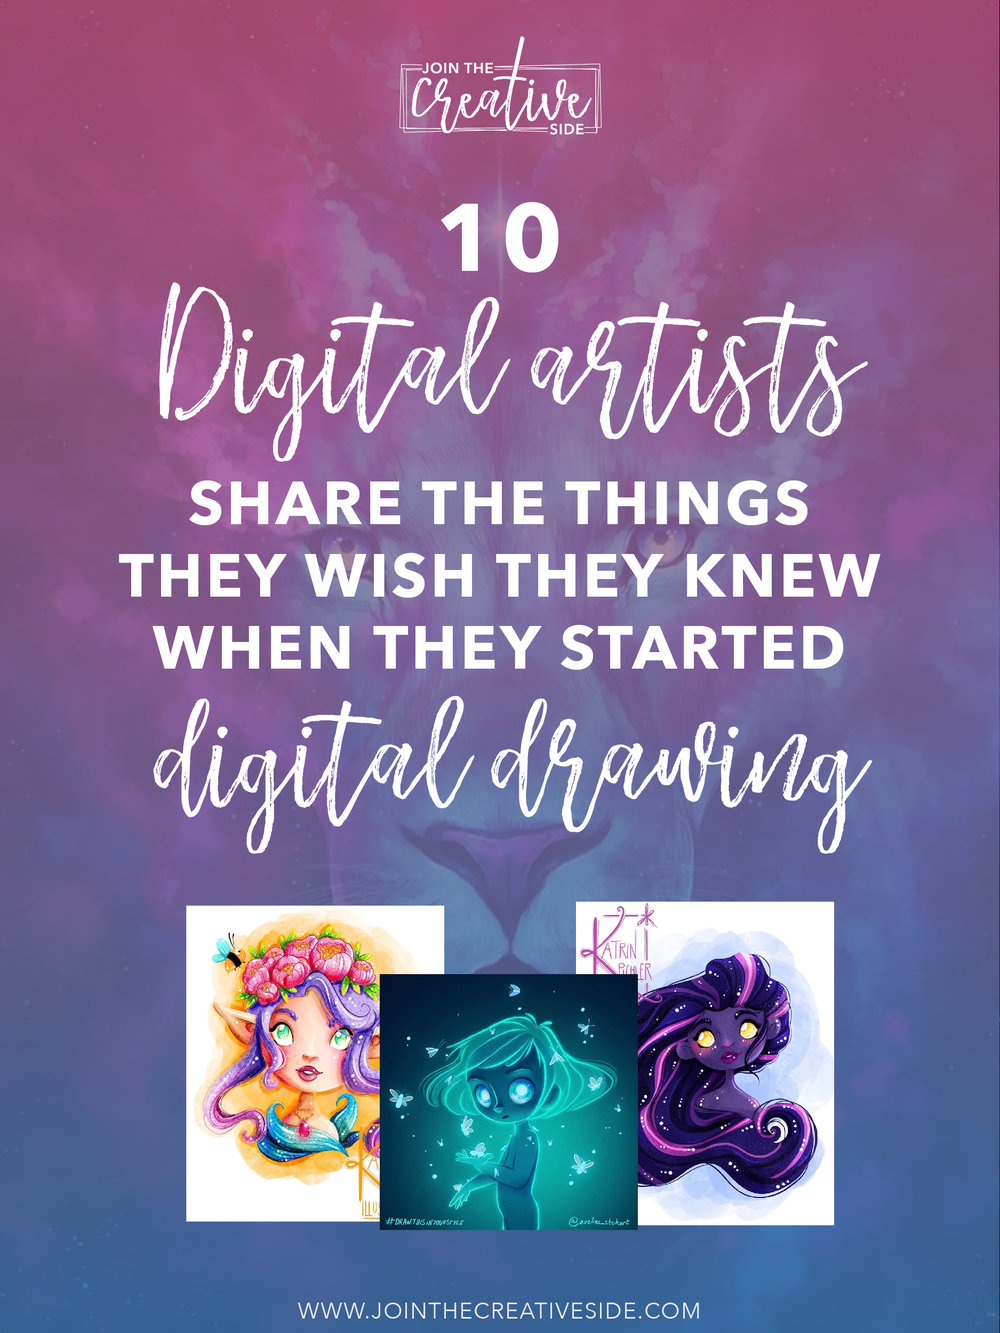 In this blog post, I have teamed up with 10 digital artists, and they are sharing the ten things they wish they knew earlier when they started digital art. All of these artists made those digital art mistakes so you don't have to. If you want to learn some kickass digital painting skills from professional artists, you should definitely read this blog post. All of the art tips they are sharing definitely helped me improve my drawings.#Digitalart #artmistakes #digitalpainting #artists